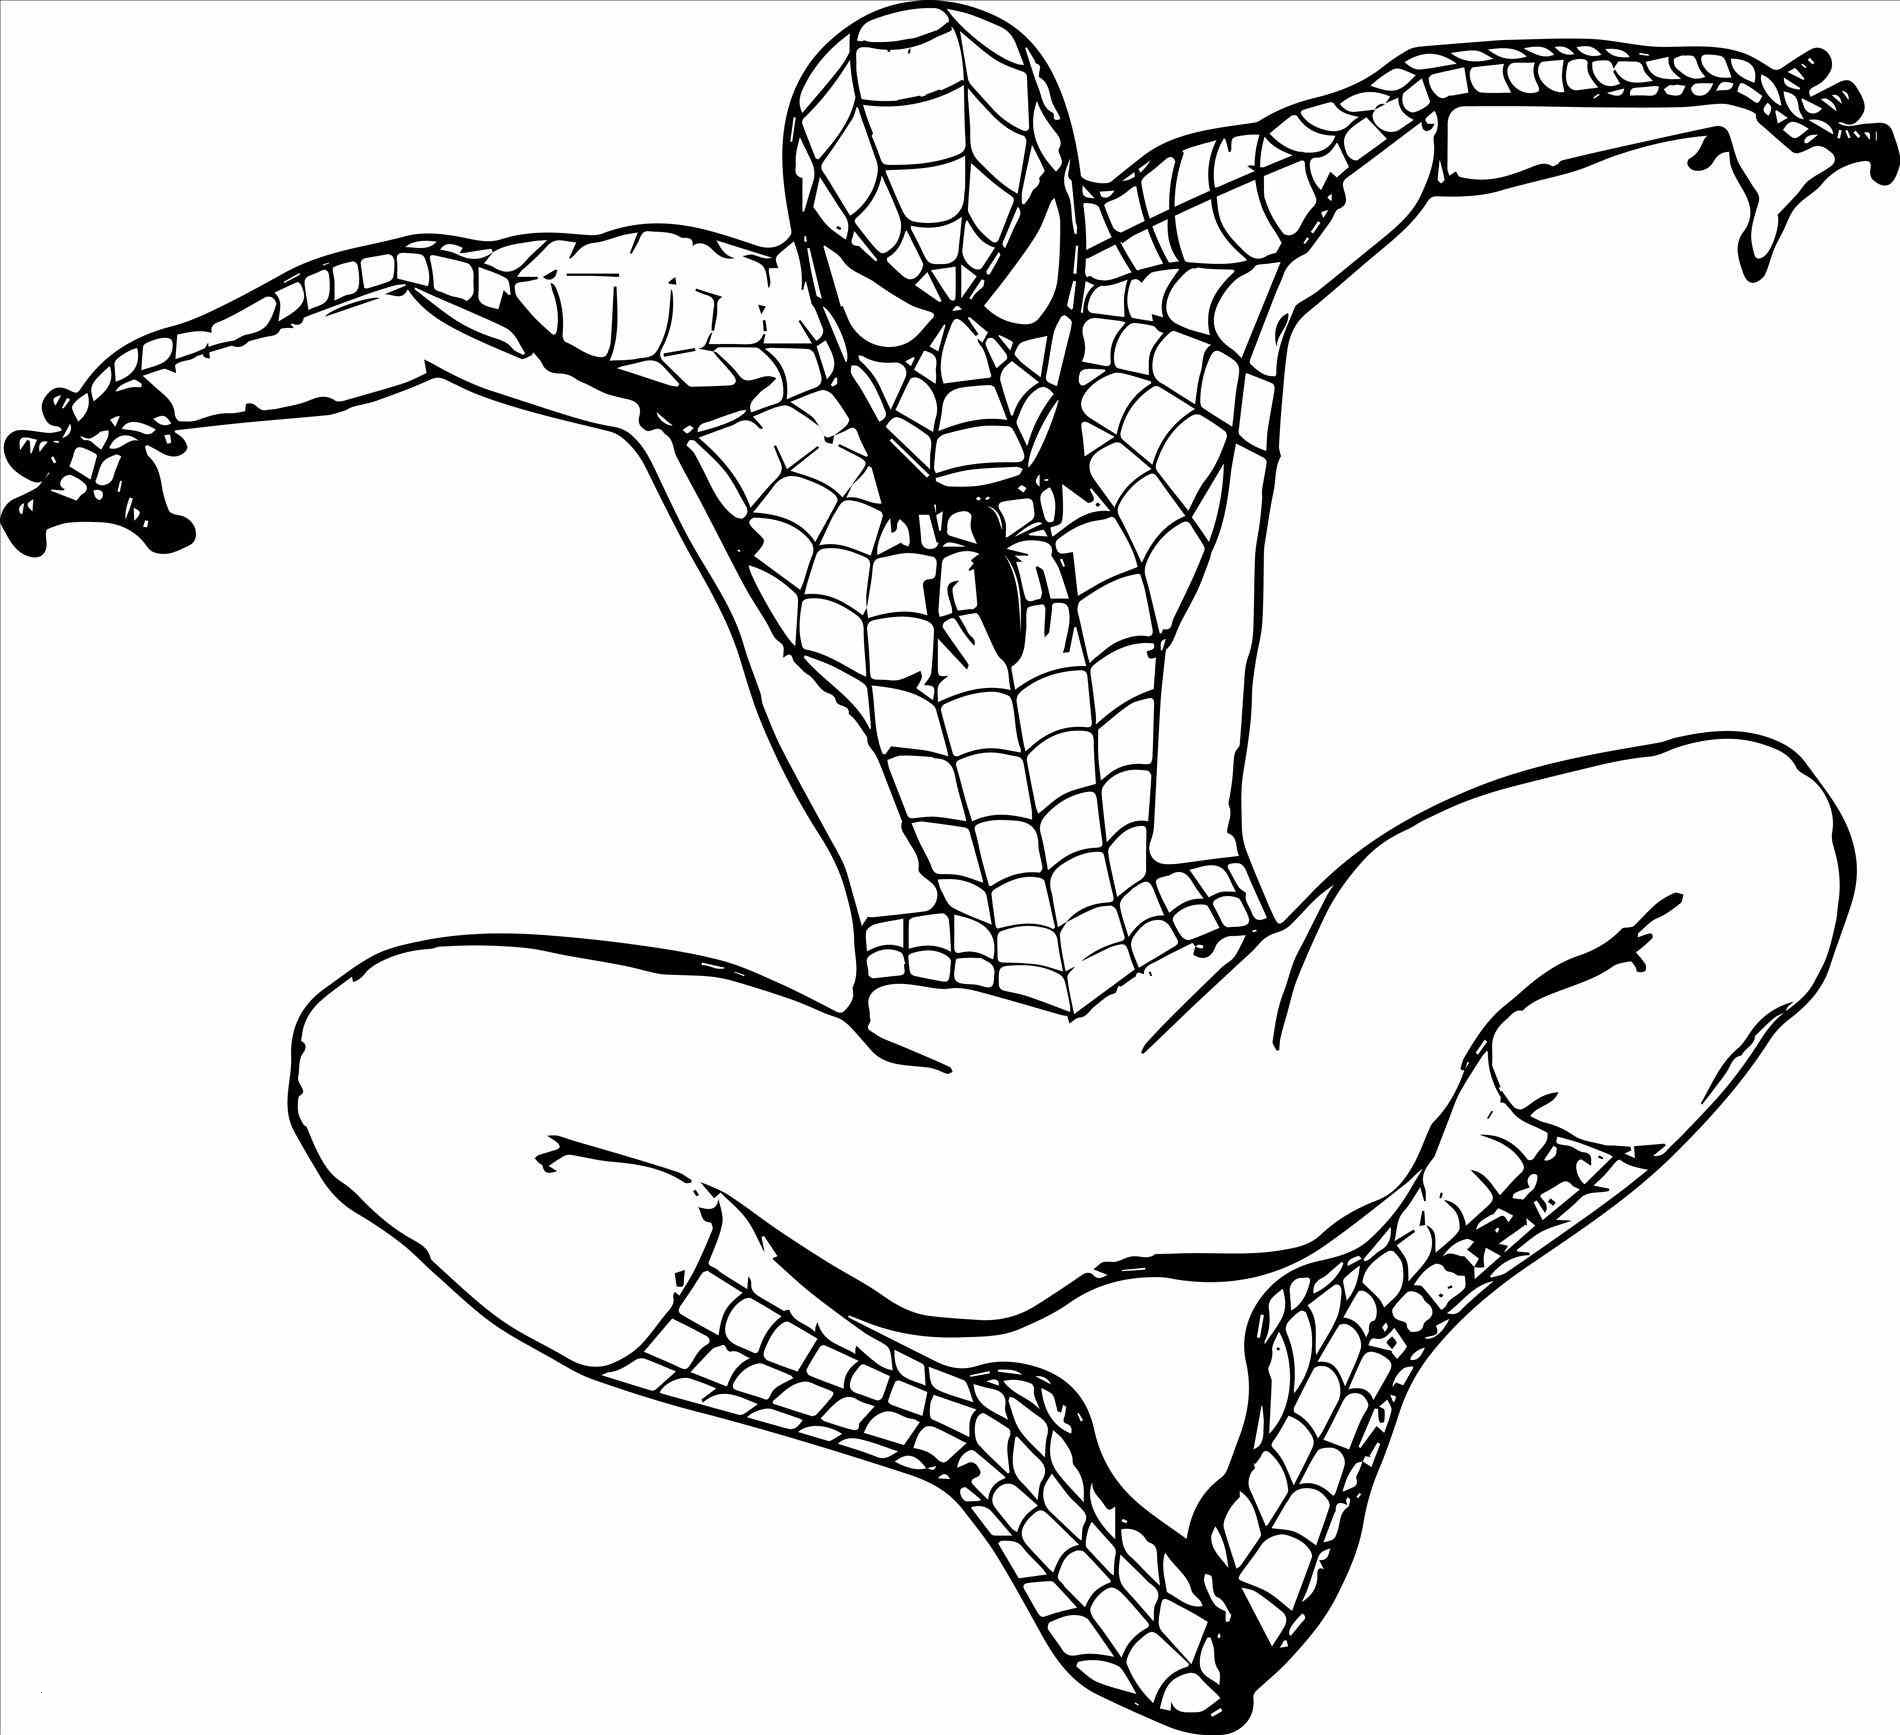 Lego Spiderman Coloring Pages 21 Lego Spiderman Coloring Pages Collection Coloring Sheets